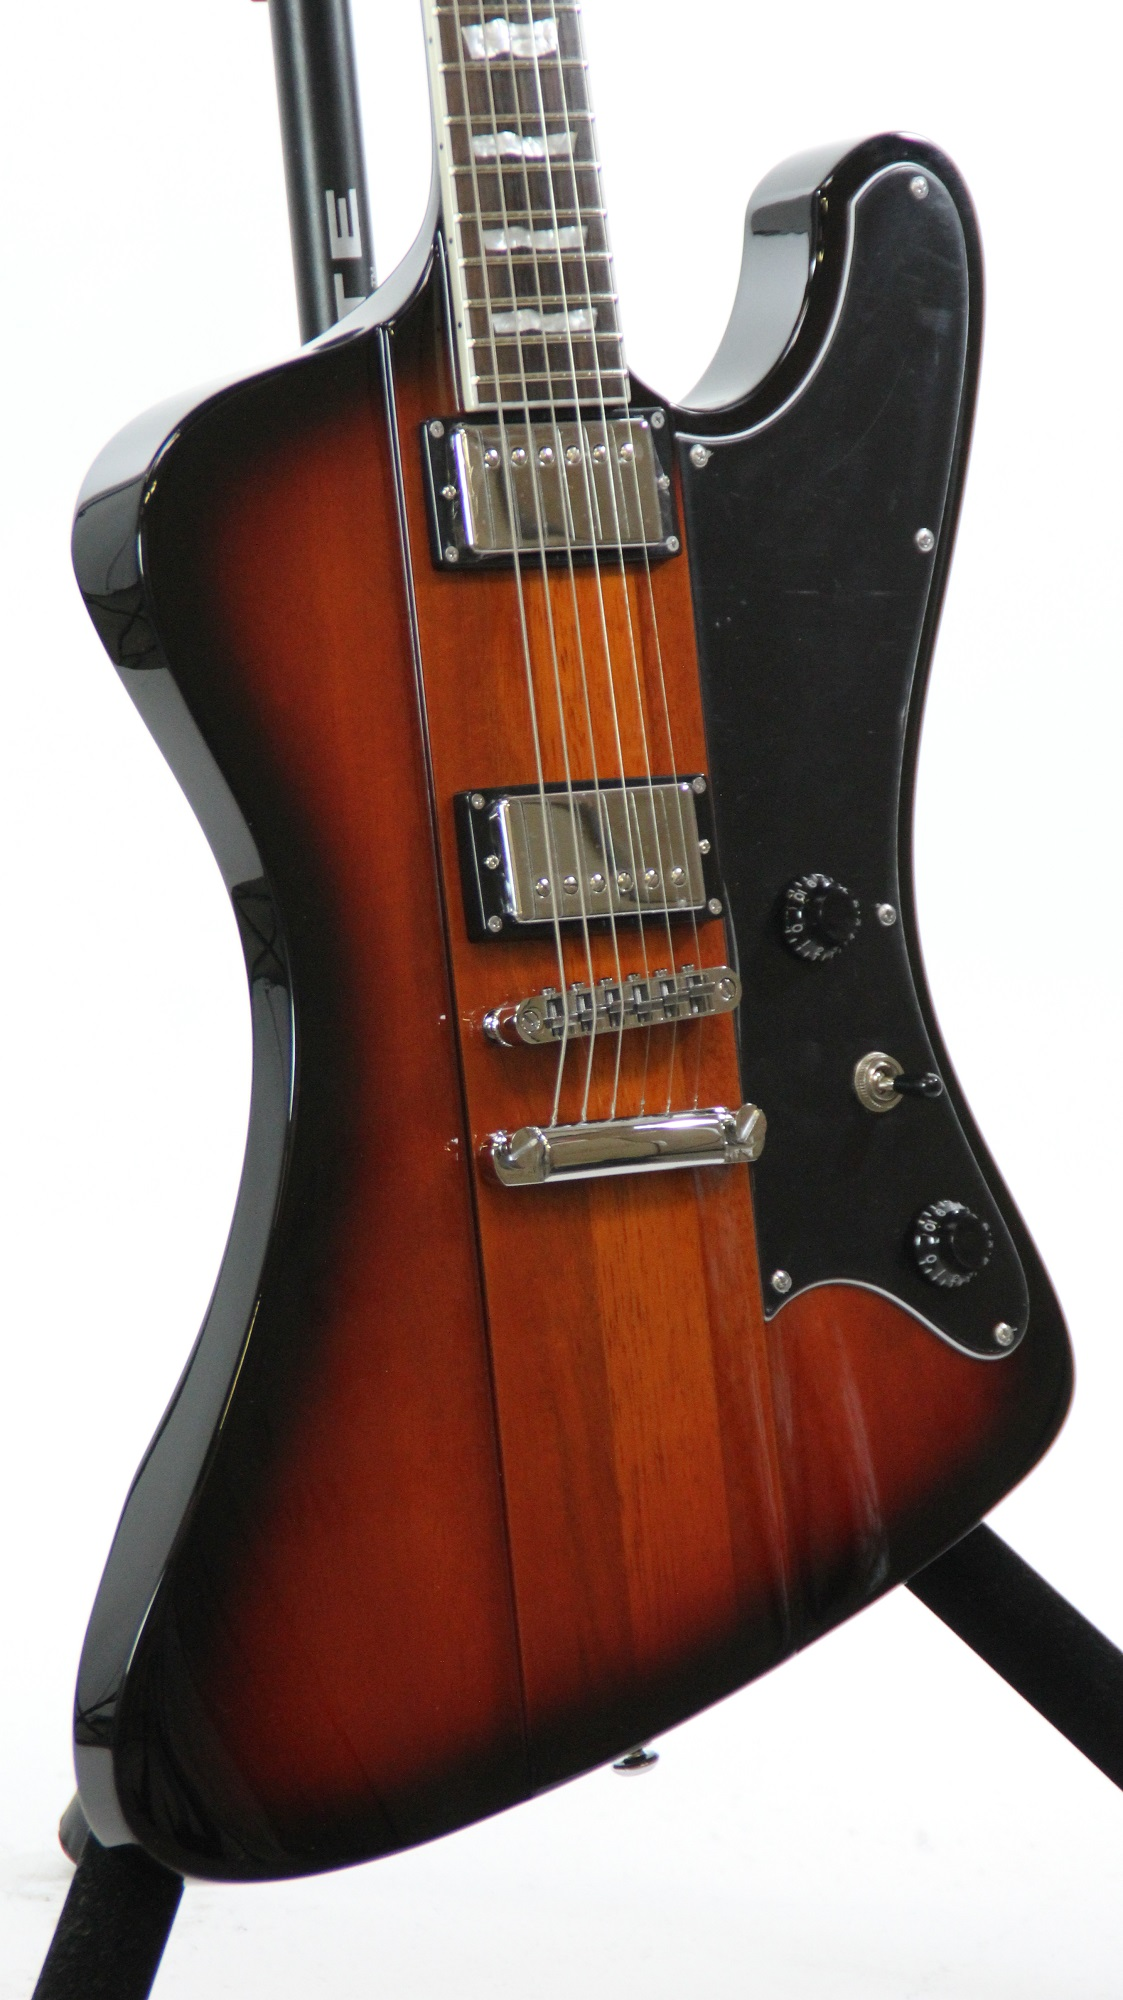 esp ltd phoenix 401 2 tone burst sample prototype electric guitar 4141 6. Black Bedroom Furniture Sets. Home Design Ideas